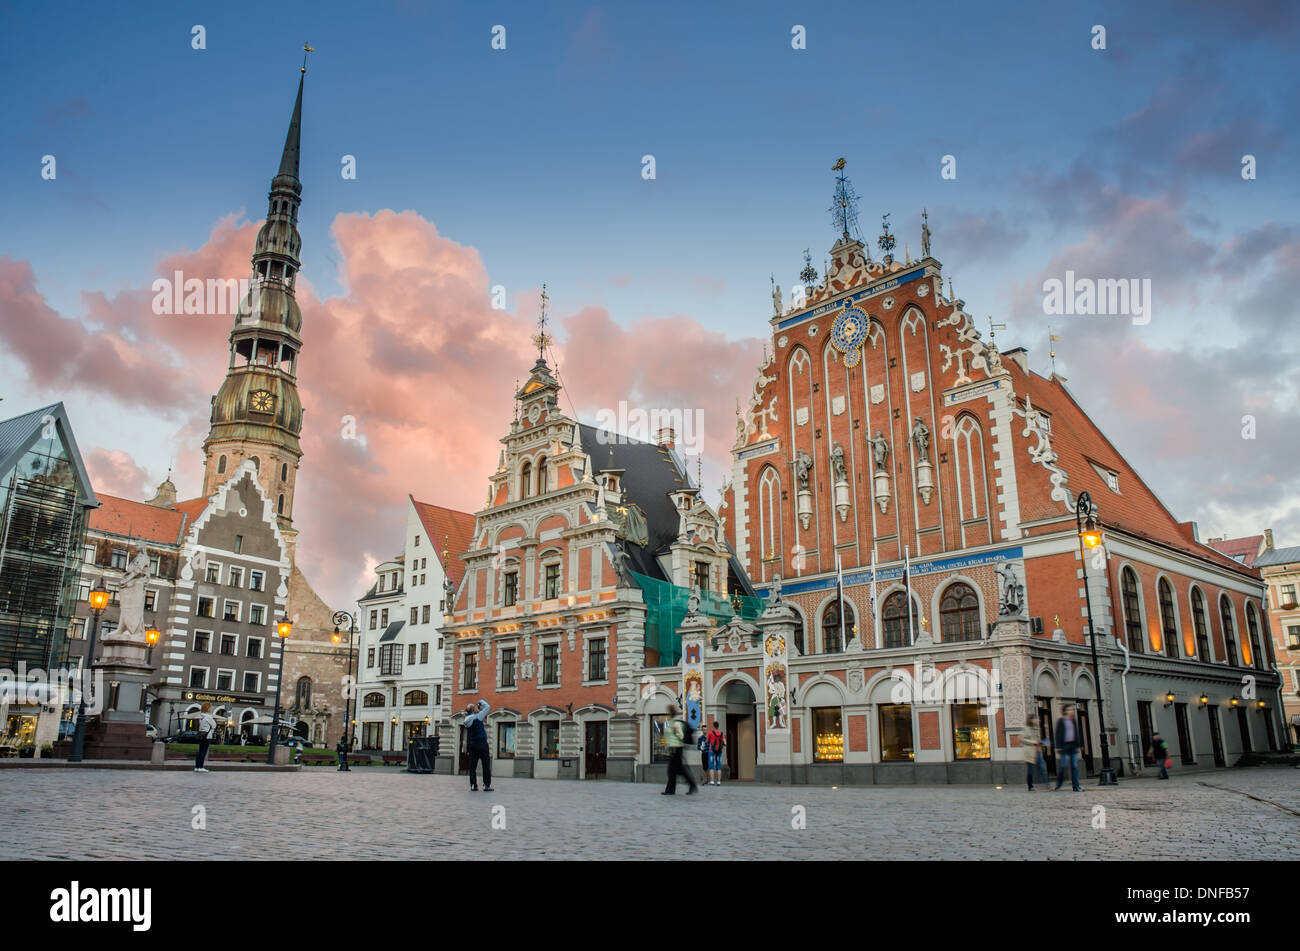 RIGA LATVIA AUG 15: evening view of the saint peter tower and blackhead house in the Old Riga on 15 august 2013 - Stock Image